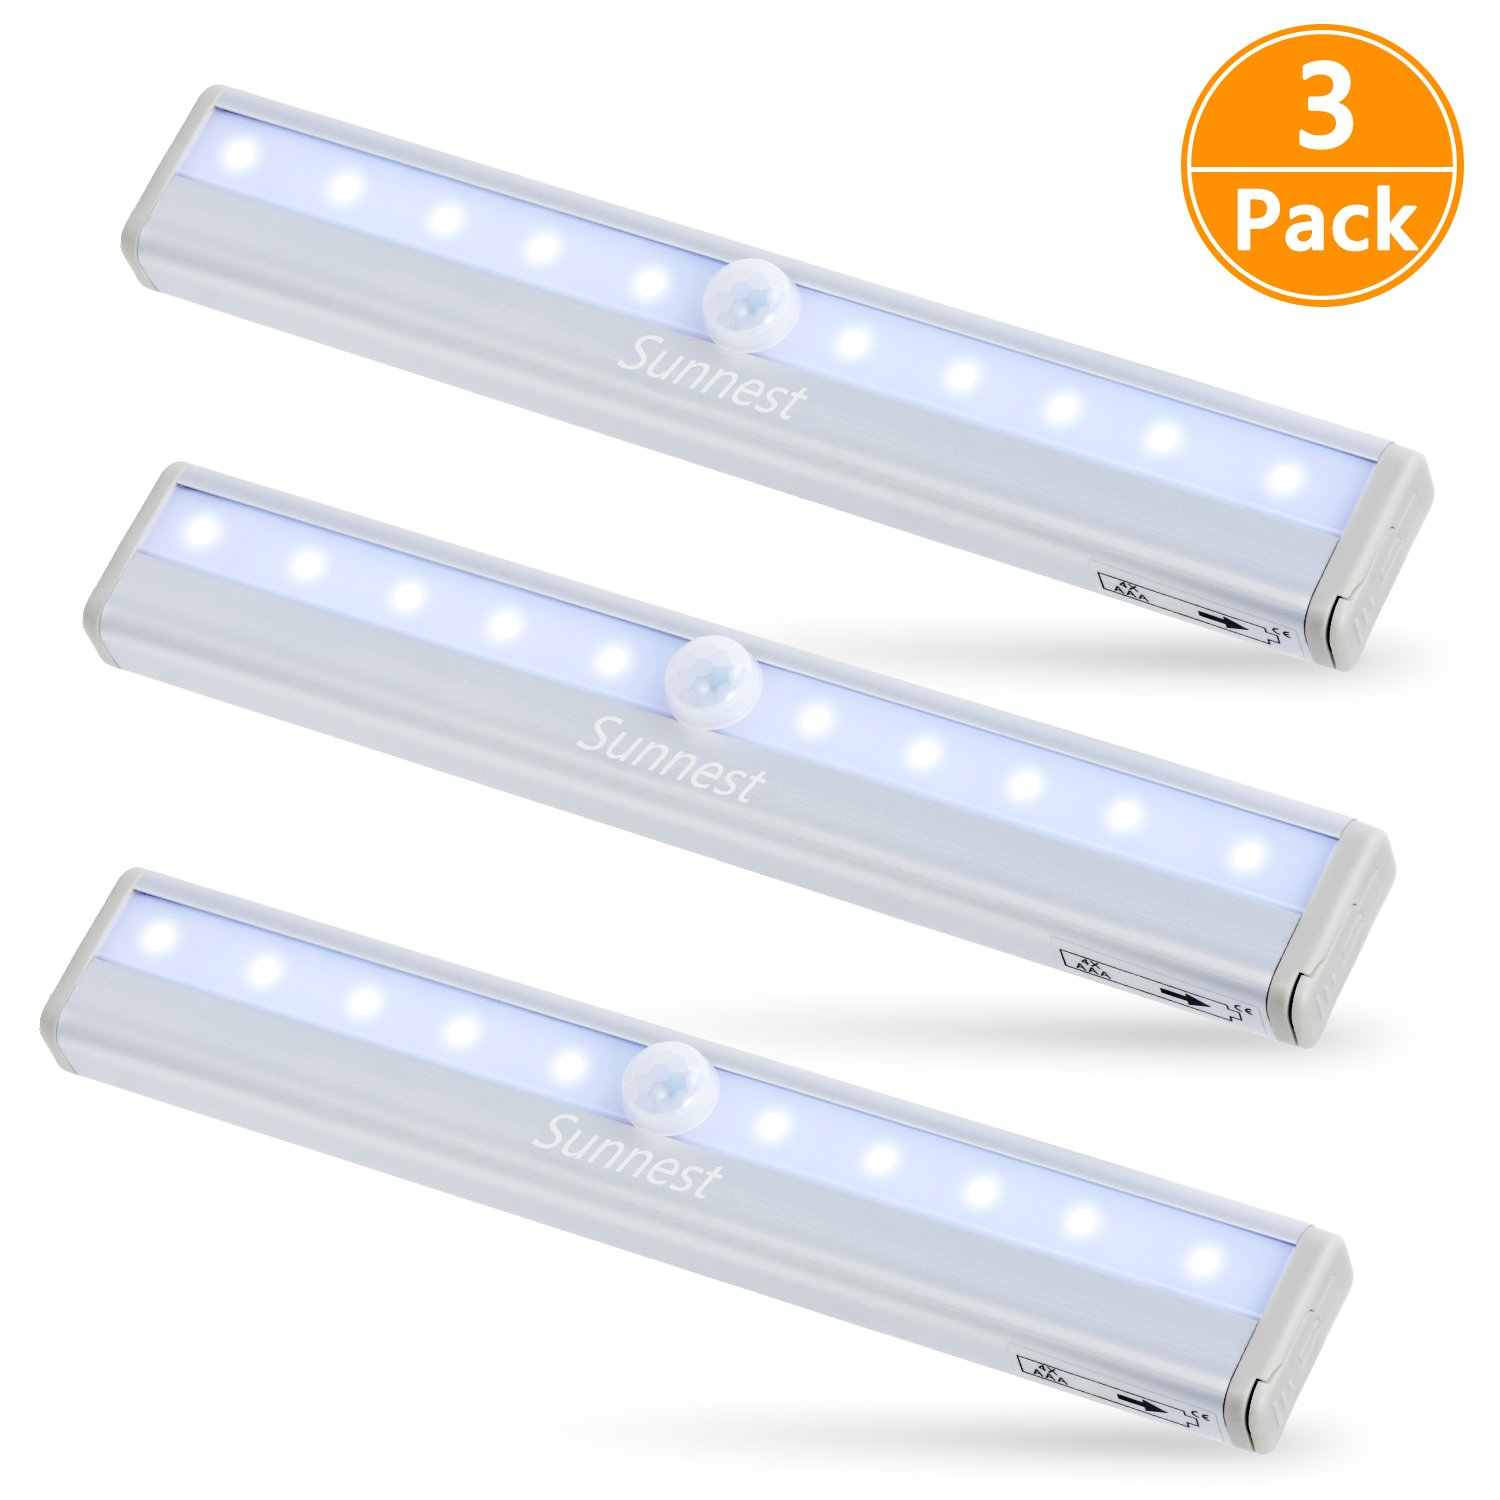 Sunnest 3 Pack Motion Sensor Closet Lights, Wireless LED Under Cabinet Lights, Stick-on Anywhere Battery Operated 10-LED Night Light Bar for Closet, Cabinet, Wardrobe, Stairs